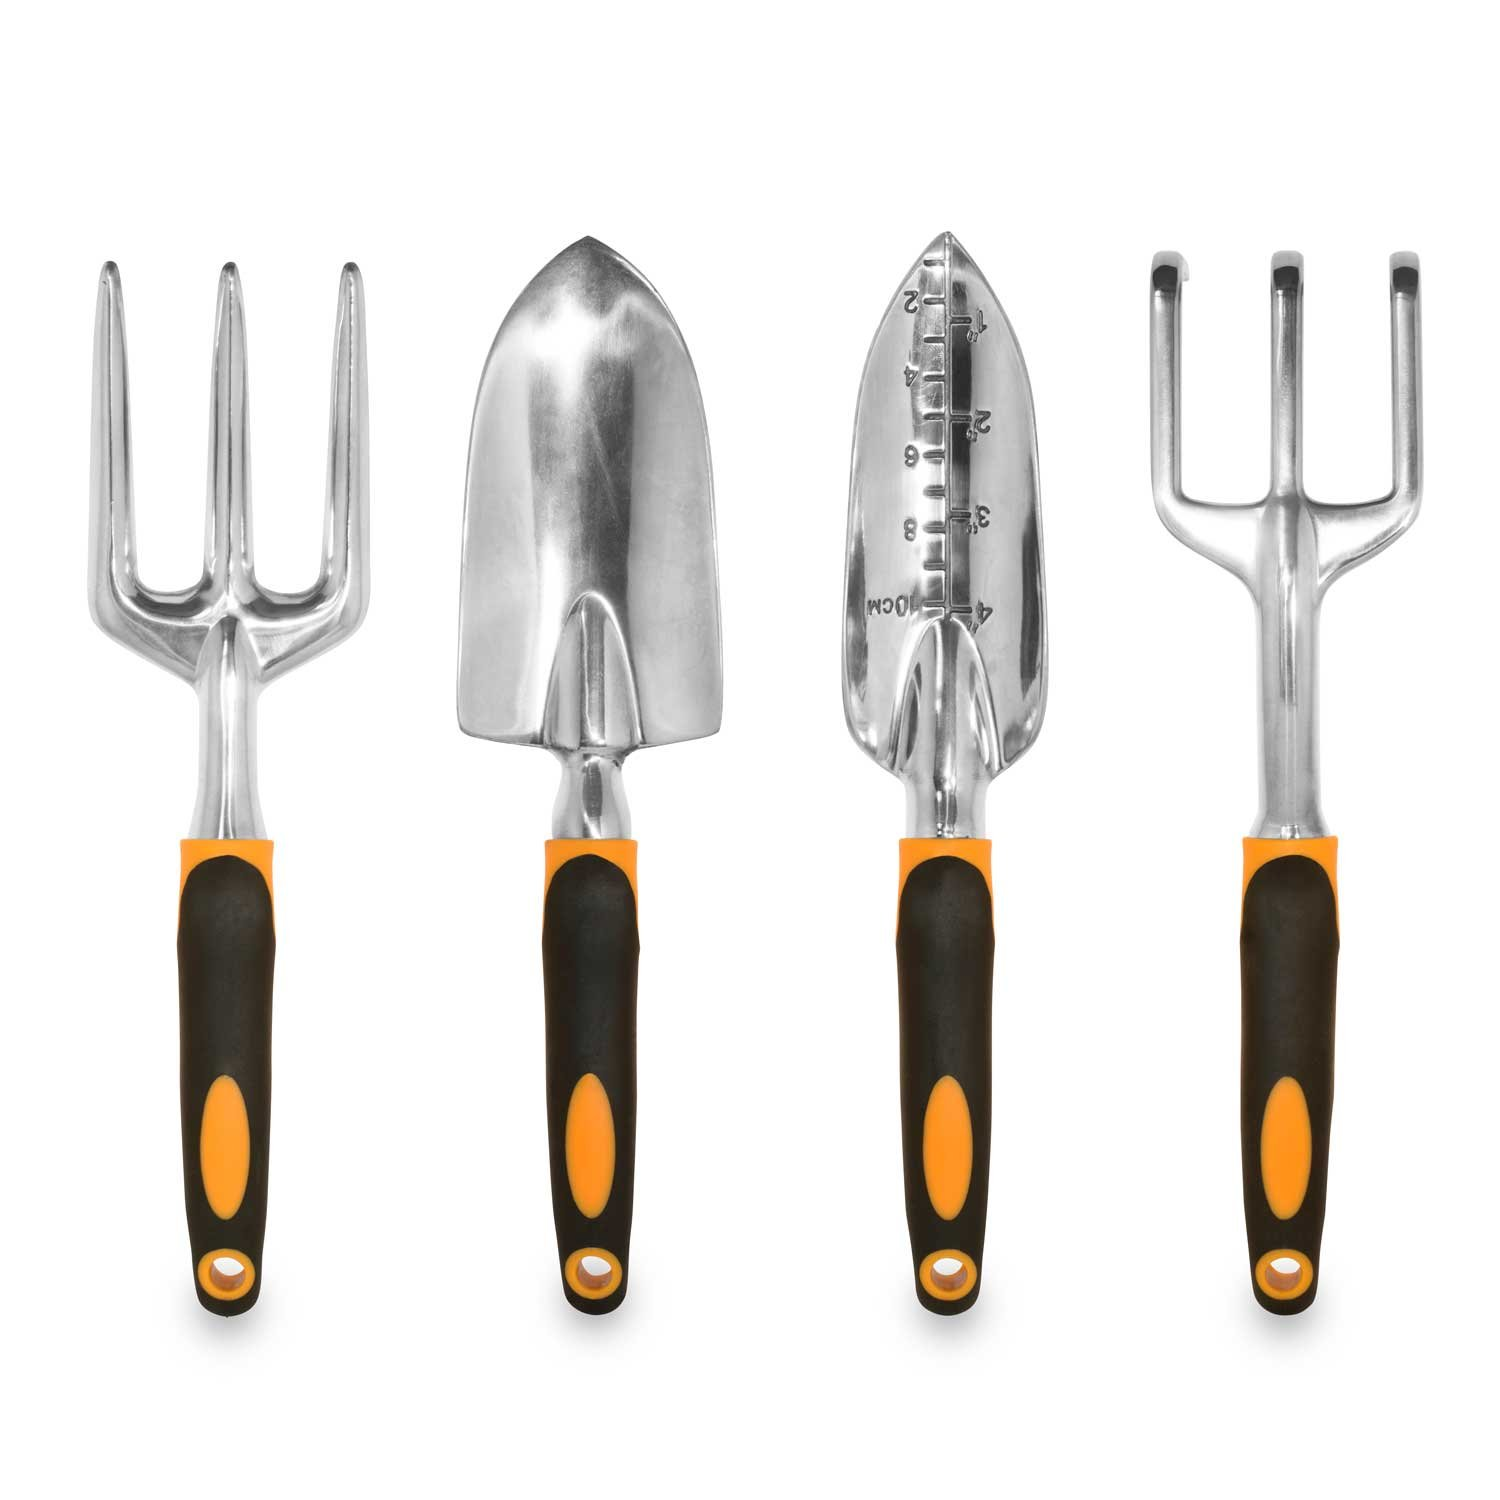 Gardenhome ergonomic garden tools 4 piece tool set ebay for Gardening tools list with pictures